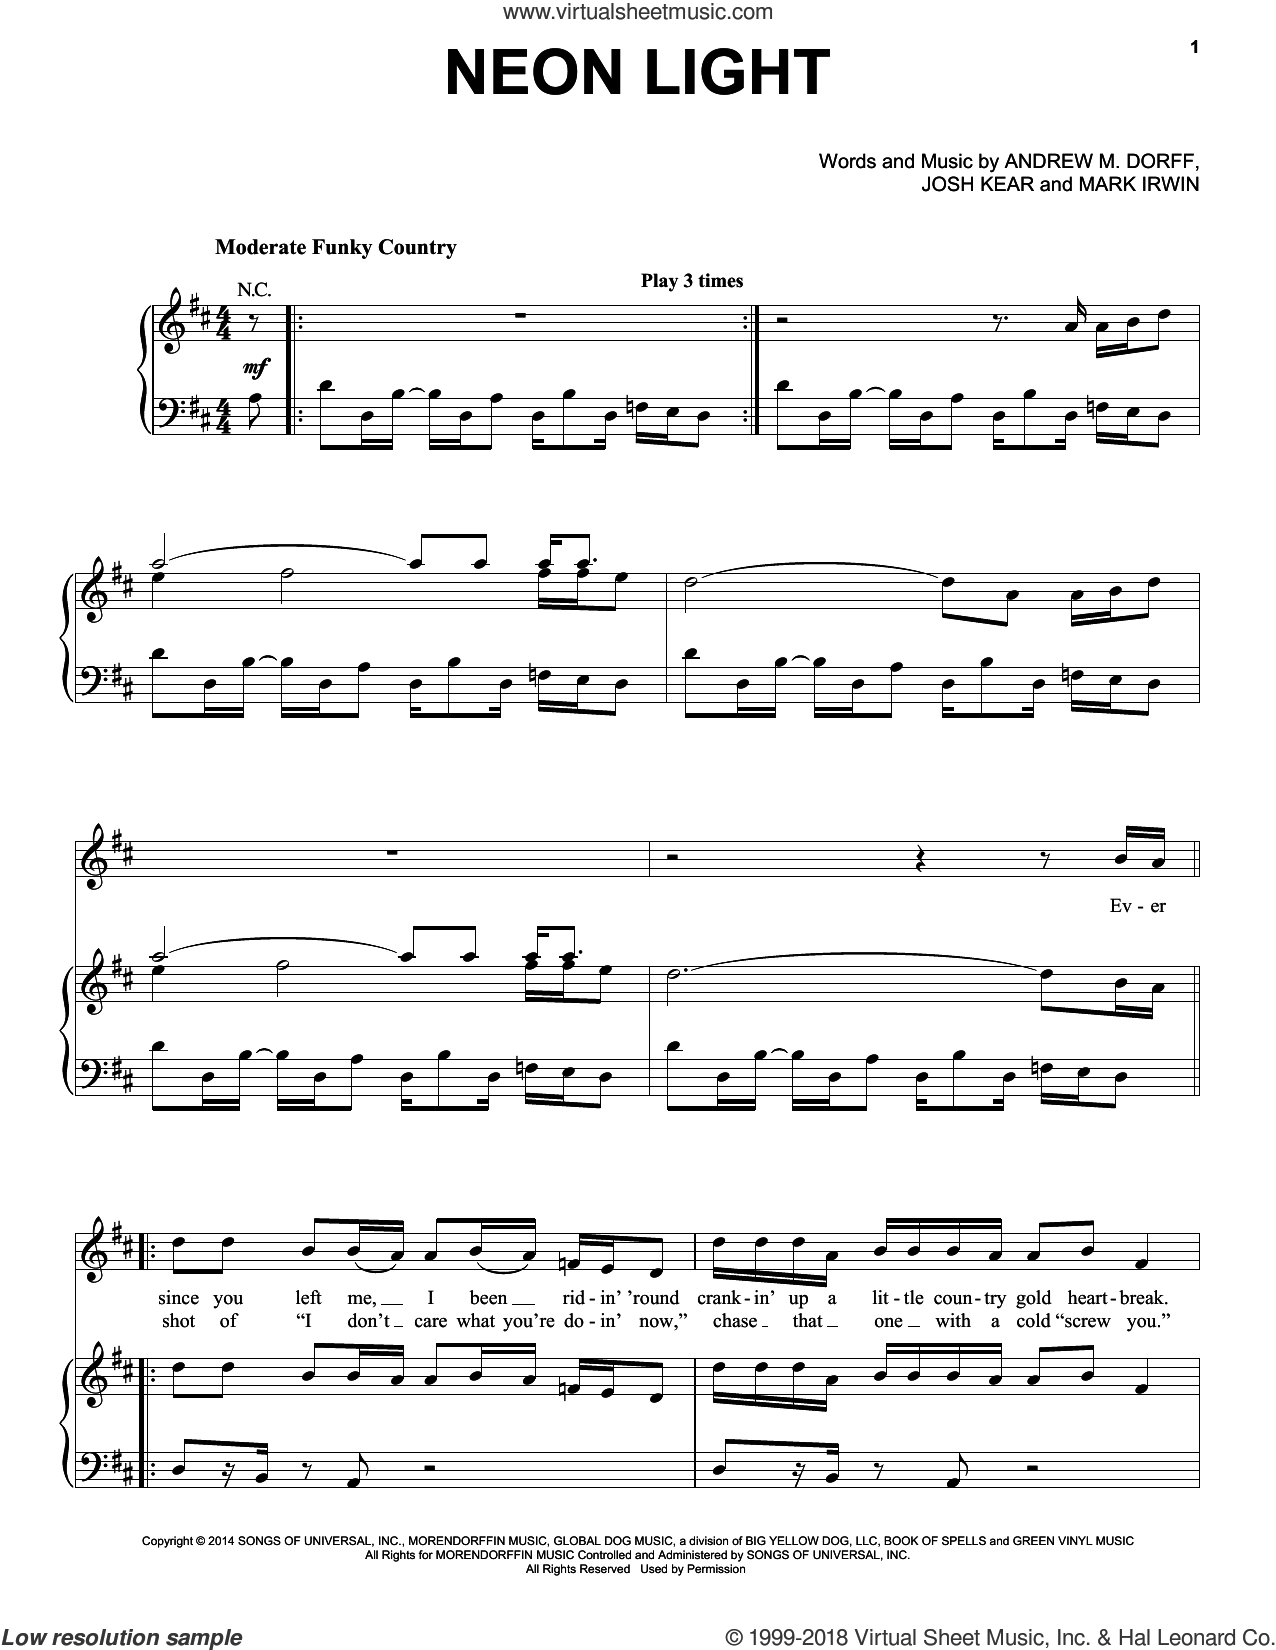 Neon Light sheet music for voice, piano or guitar by Blake Shelton, Andrew M. Dorff, Josh Kear and Mark Irwin, intermediate. Score Image Preview.